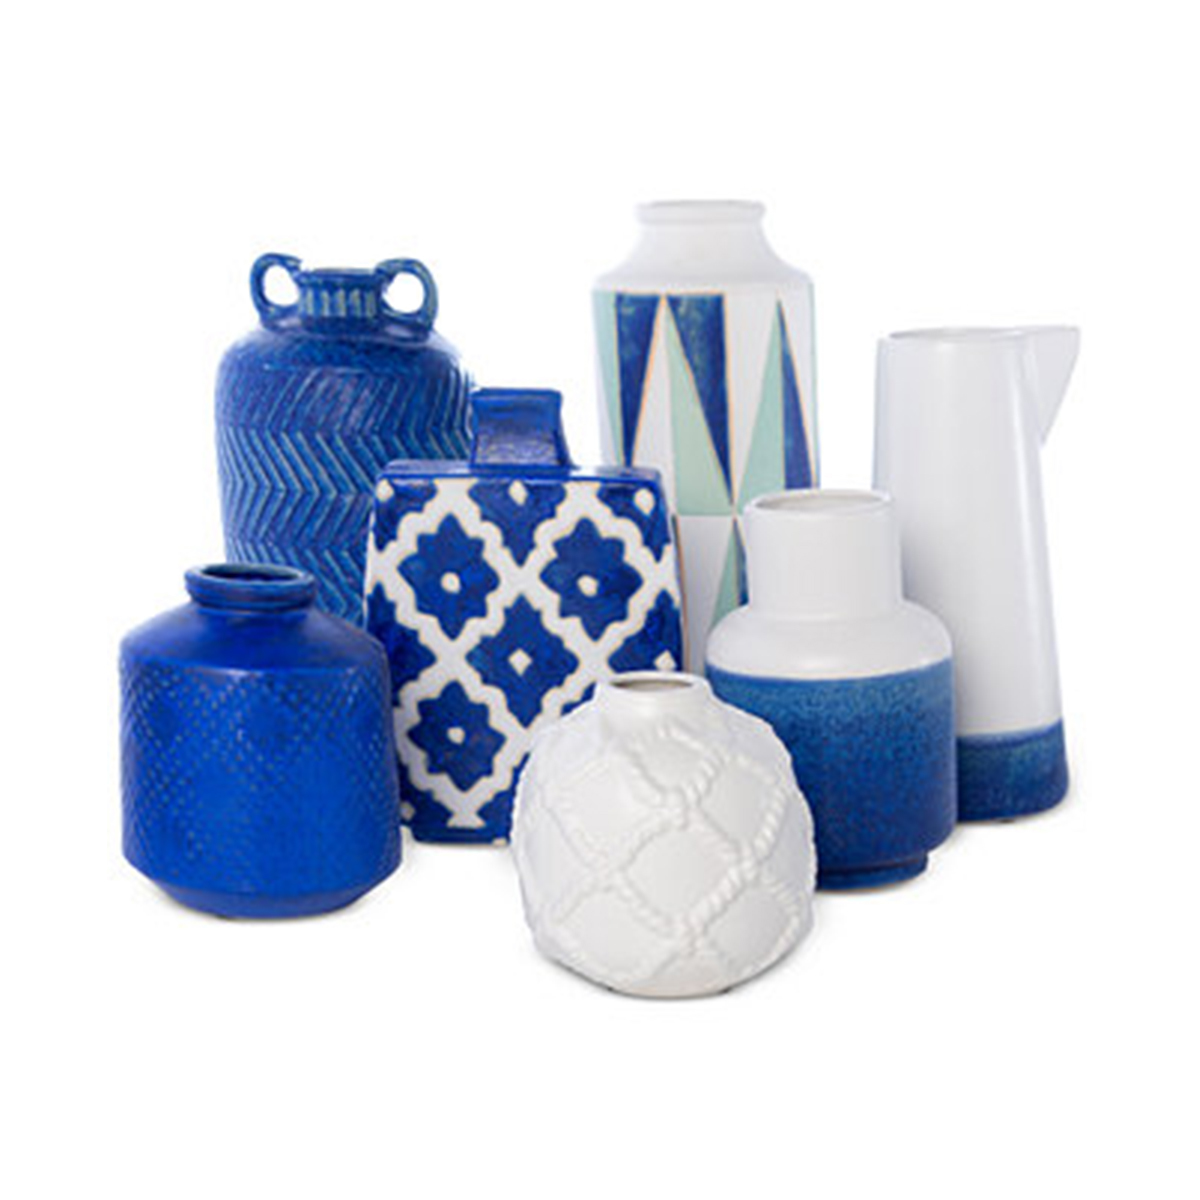 Vases in shades of blue and white come in a variety of patterns and textures photo